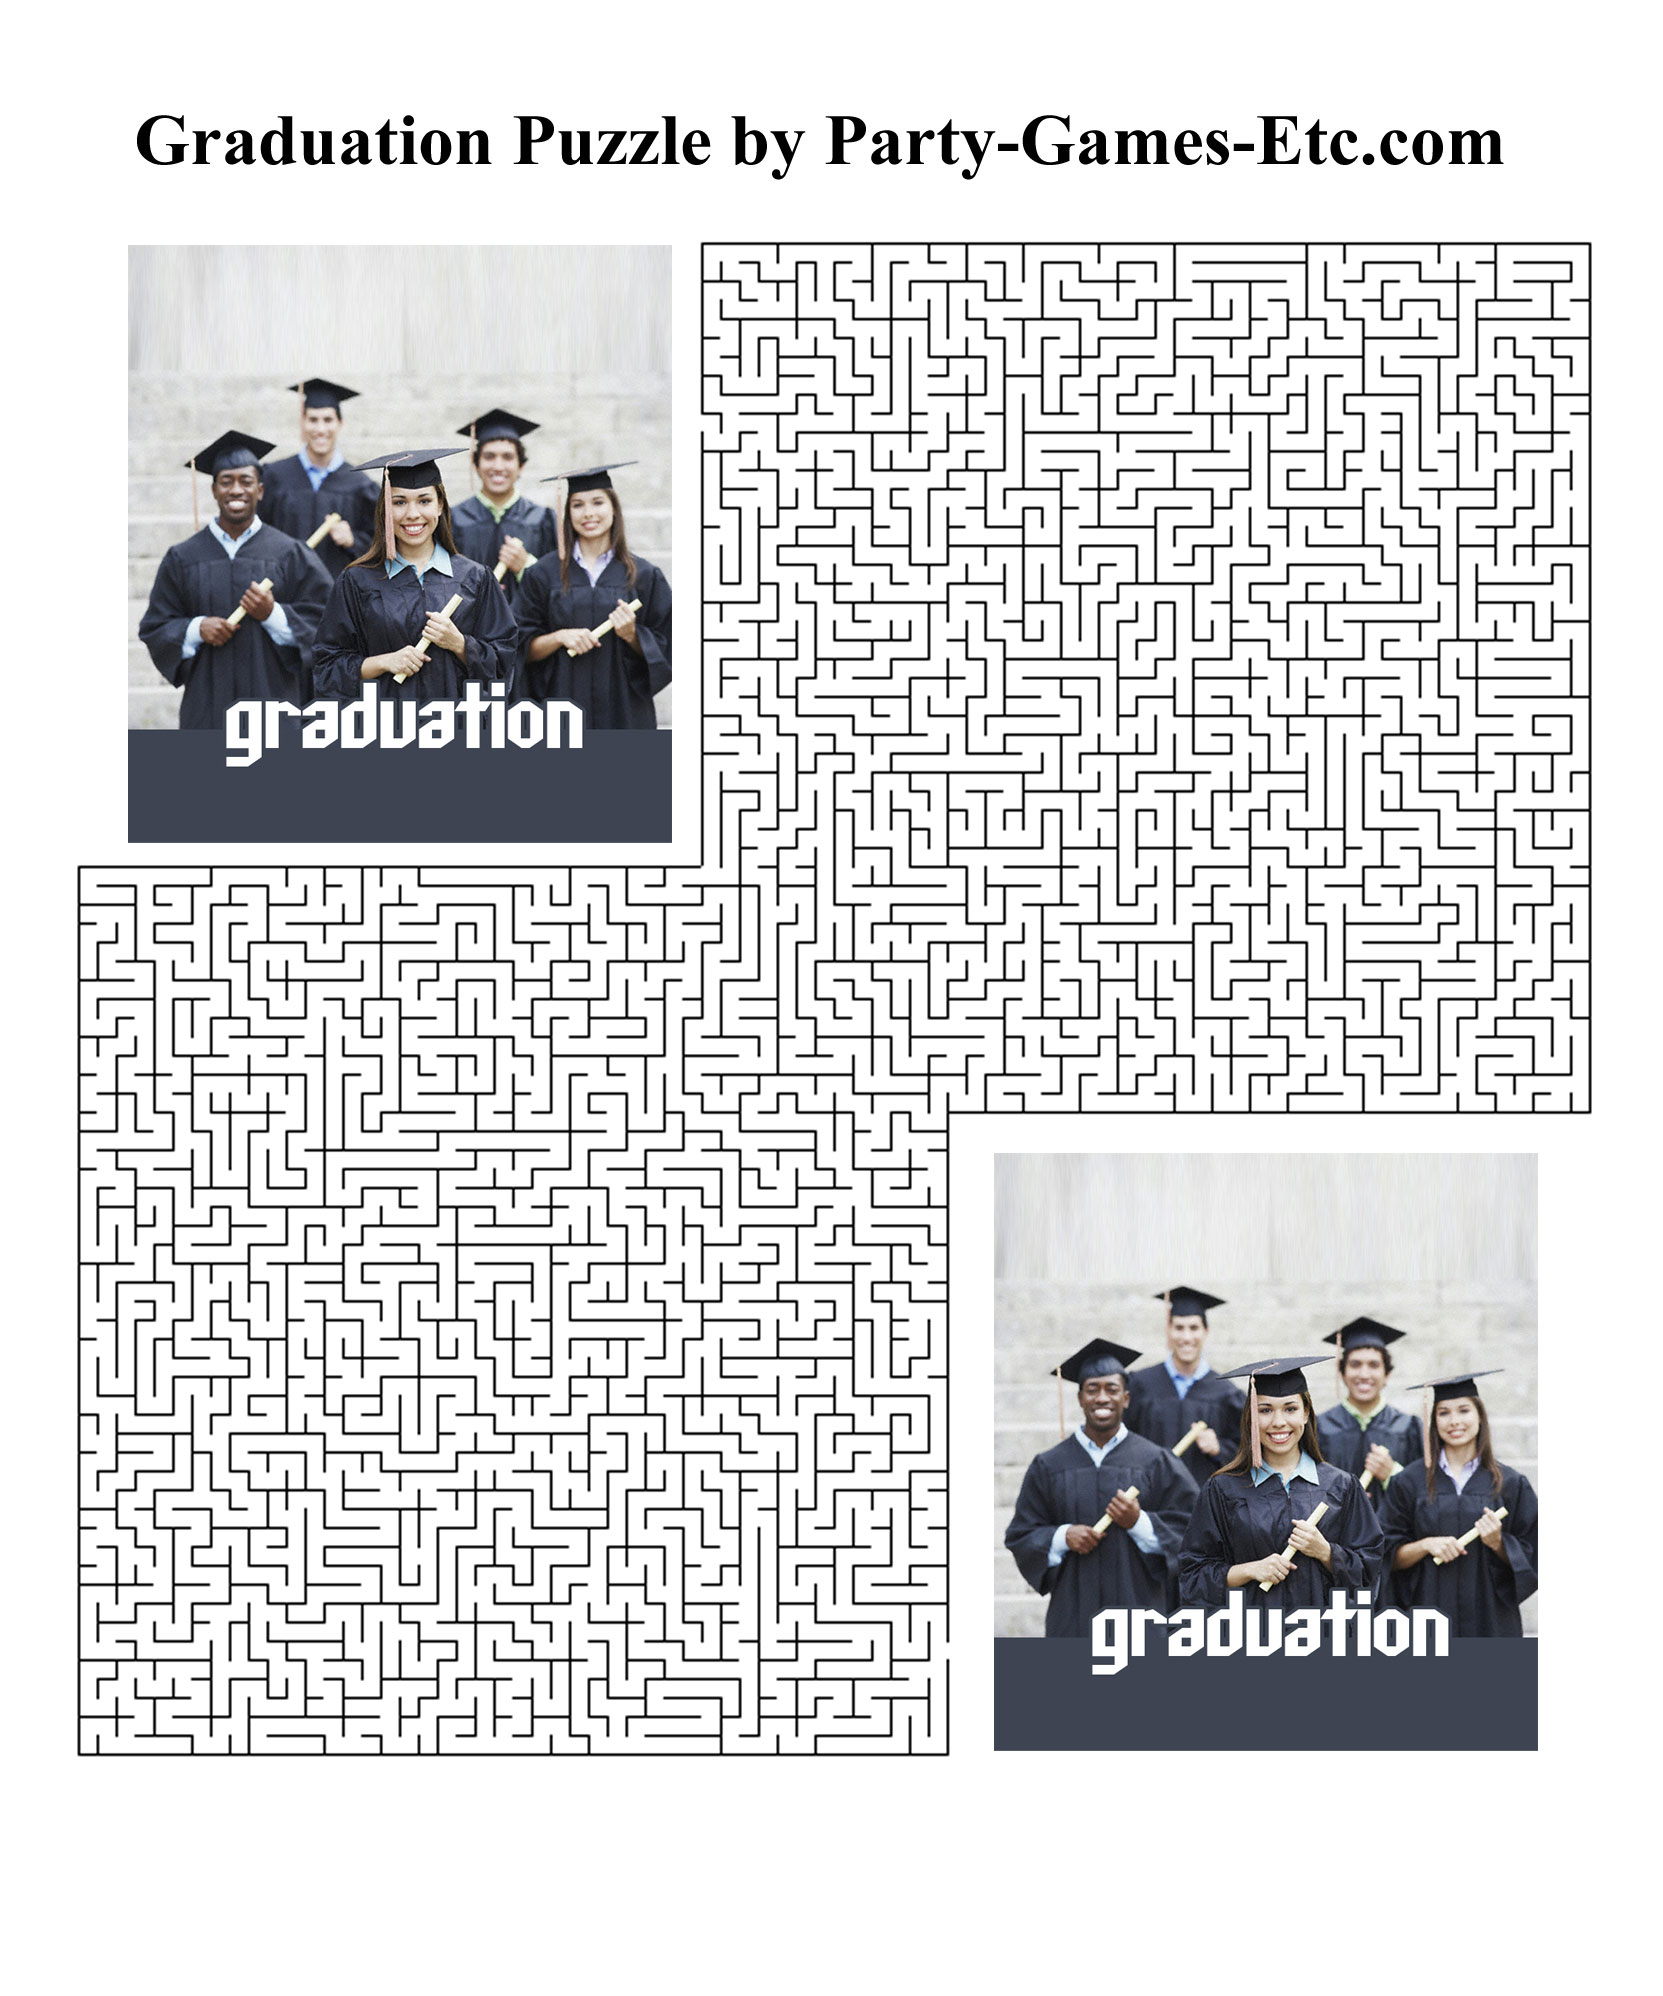 Stylish Paper Activity Graduation Party Free Printable Games Activities Teens A Graduation Party Games Free Graduation Party Games Free Printable Graduation Party Game Pen art Graduation Party Games